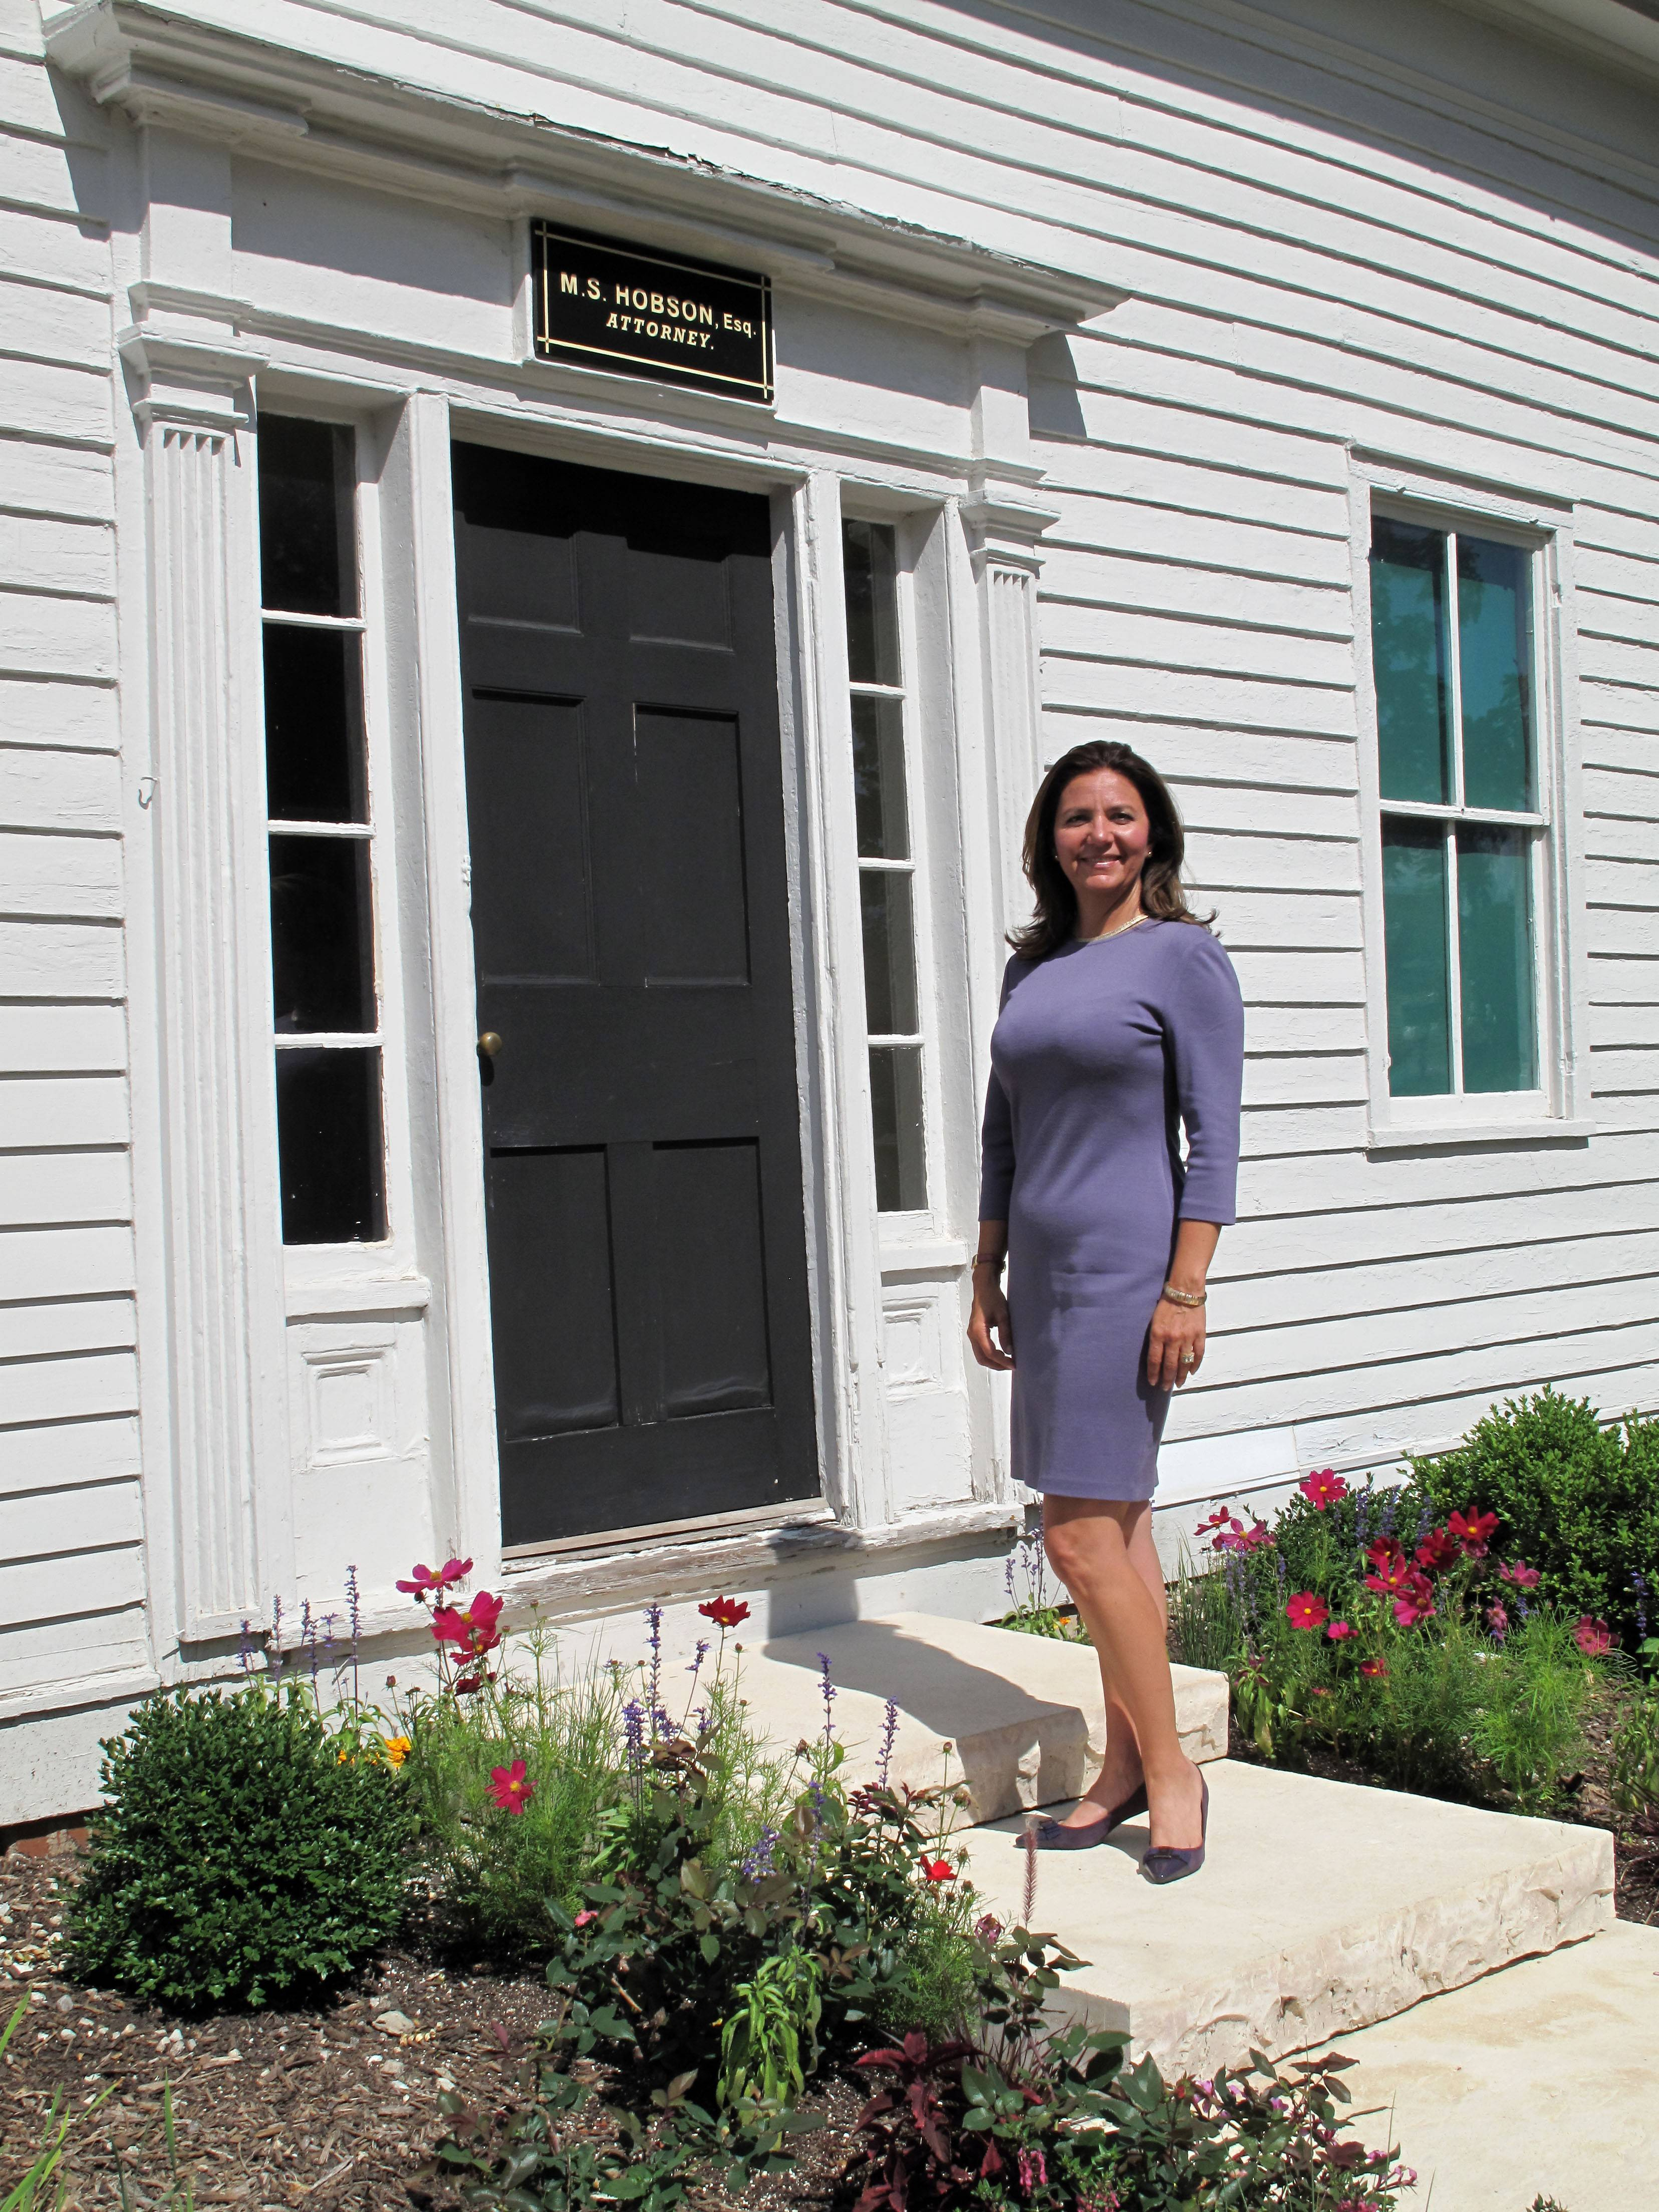 Rena Tamayo-Calabrese of Naperville starts today as the new Naper Settlement president and CEO. She says she looks forward to building on the museum's ability to tell Naperville's story as a microcosm of American history.